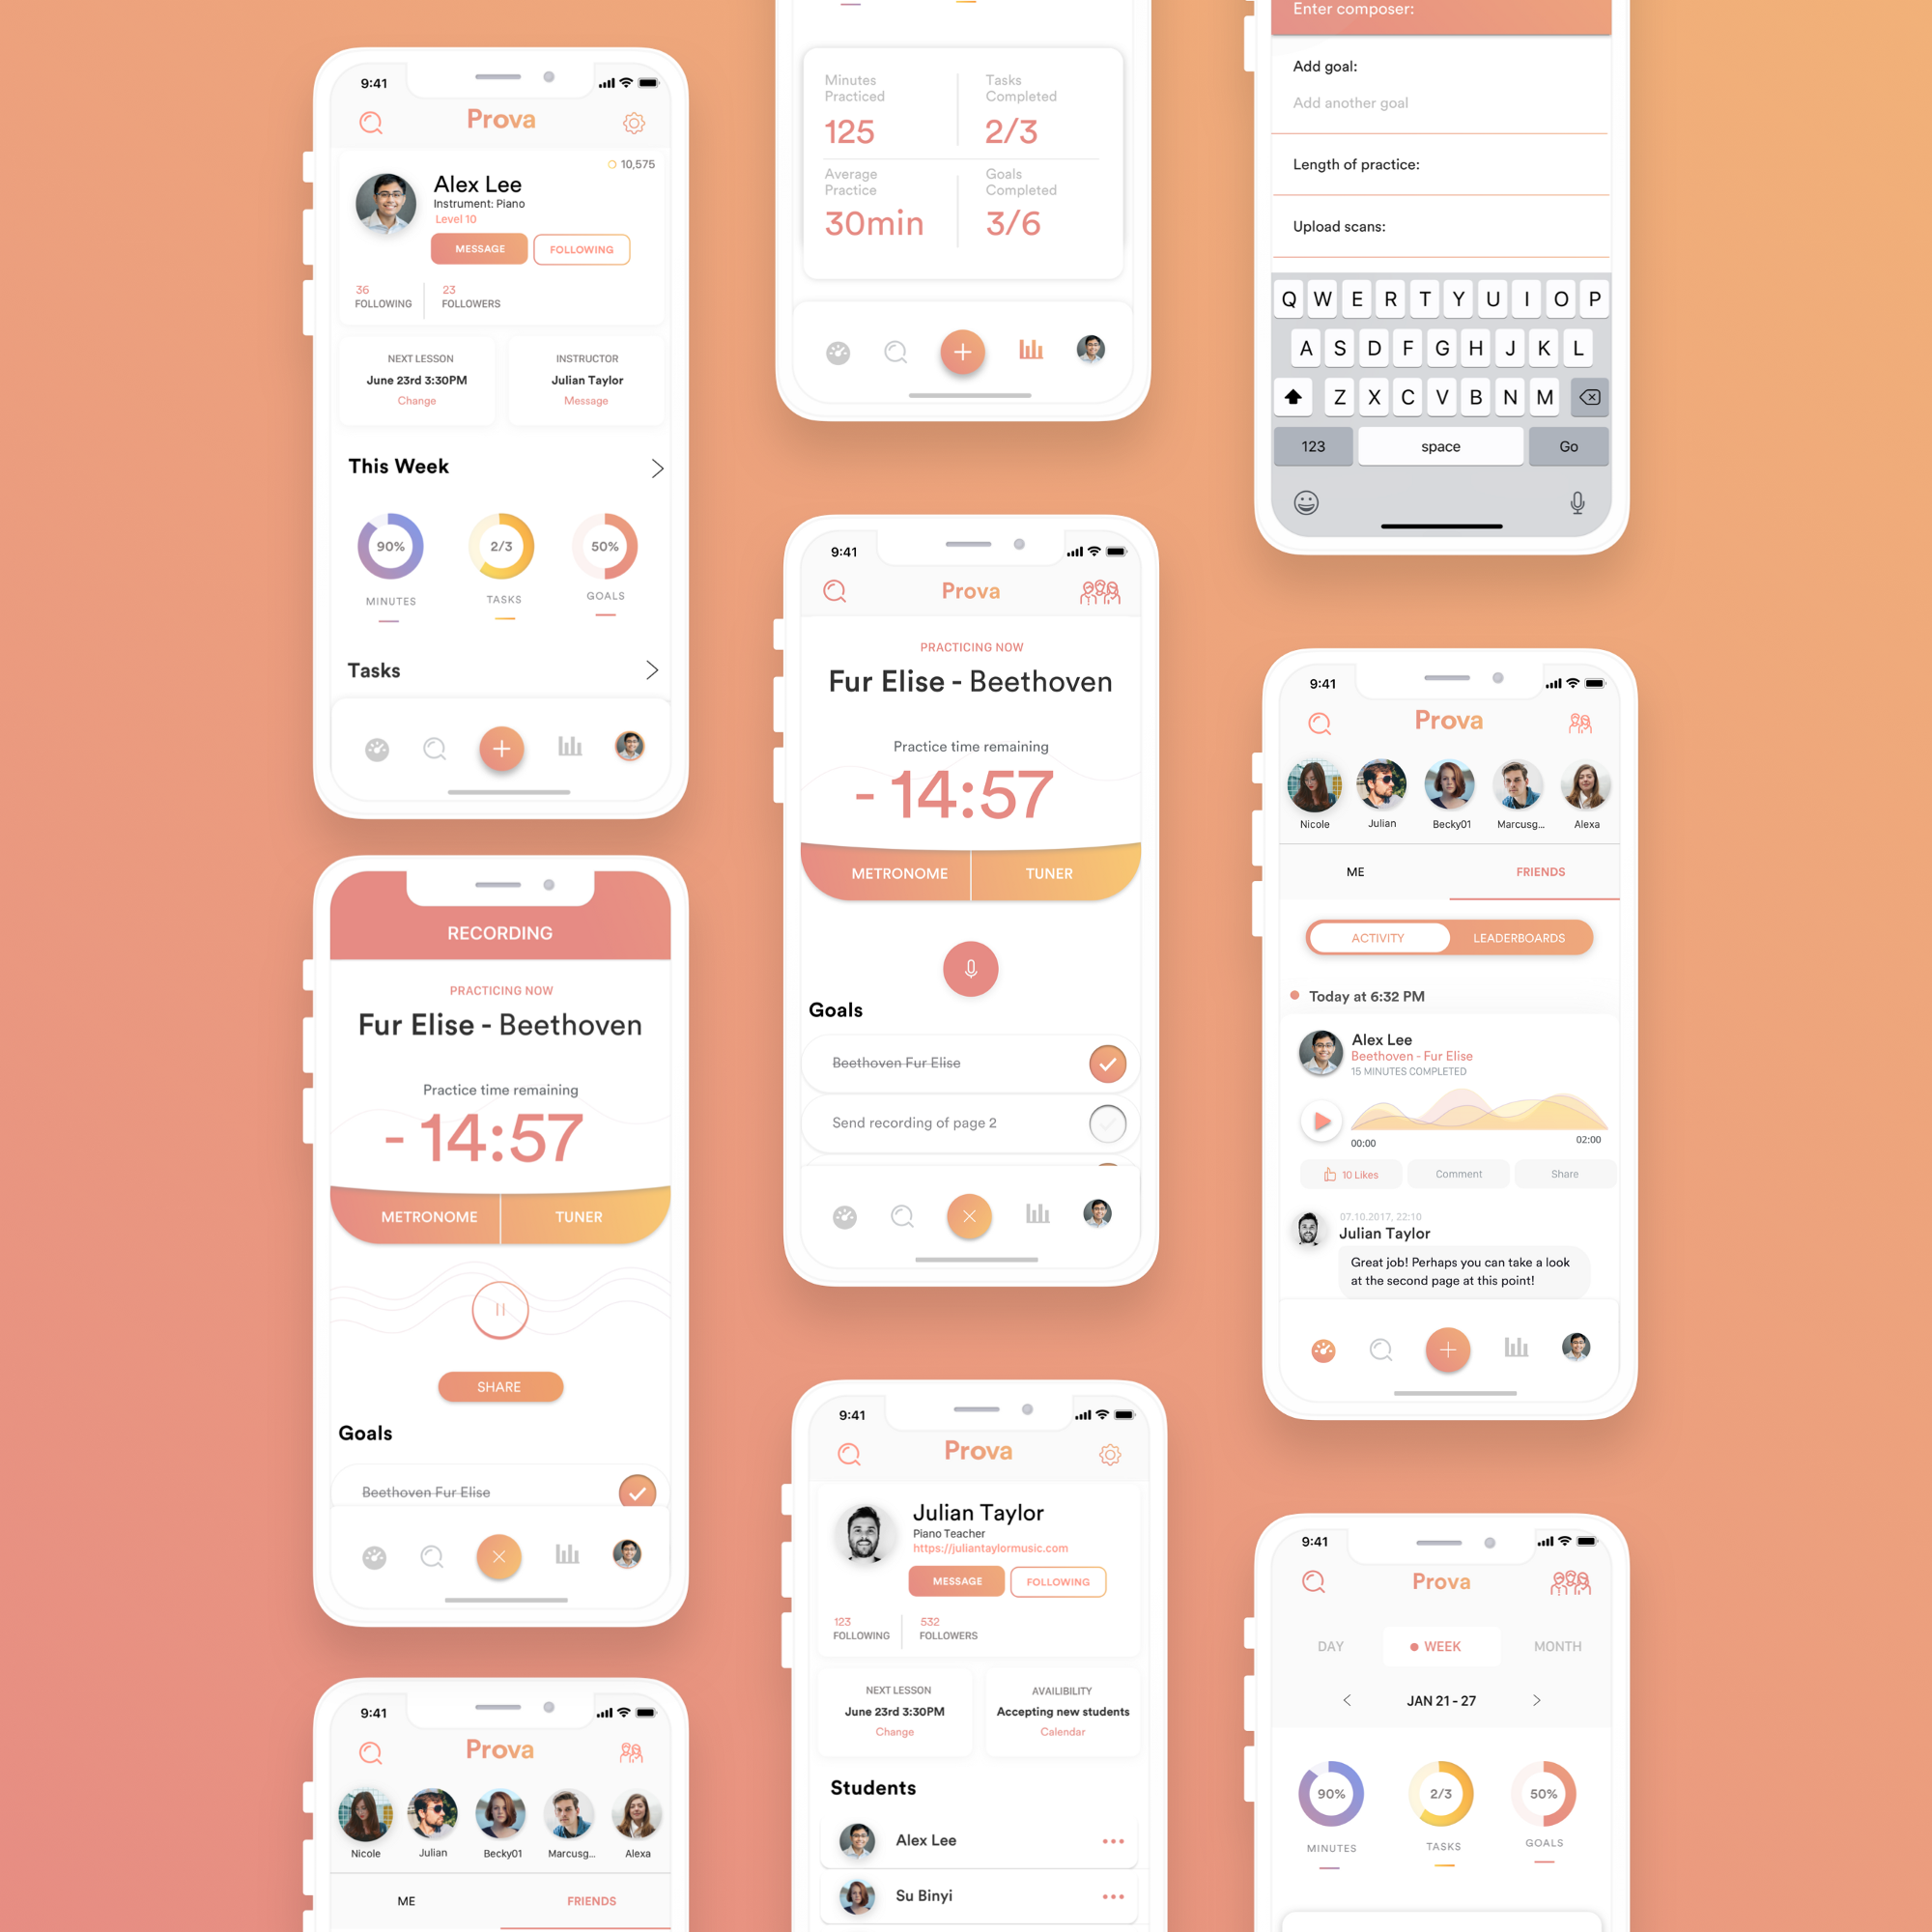 A fun and social way to practice music while keeping track of your progress—a UX case study